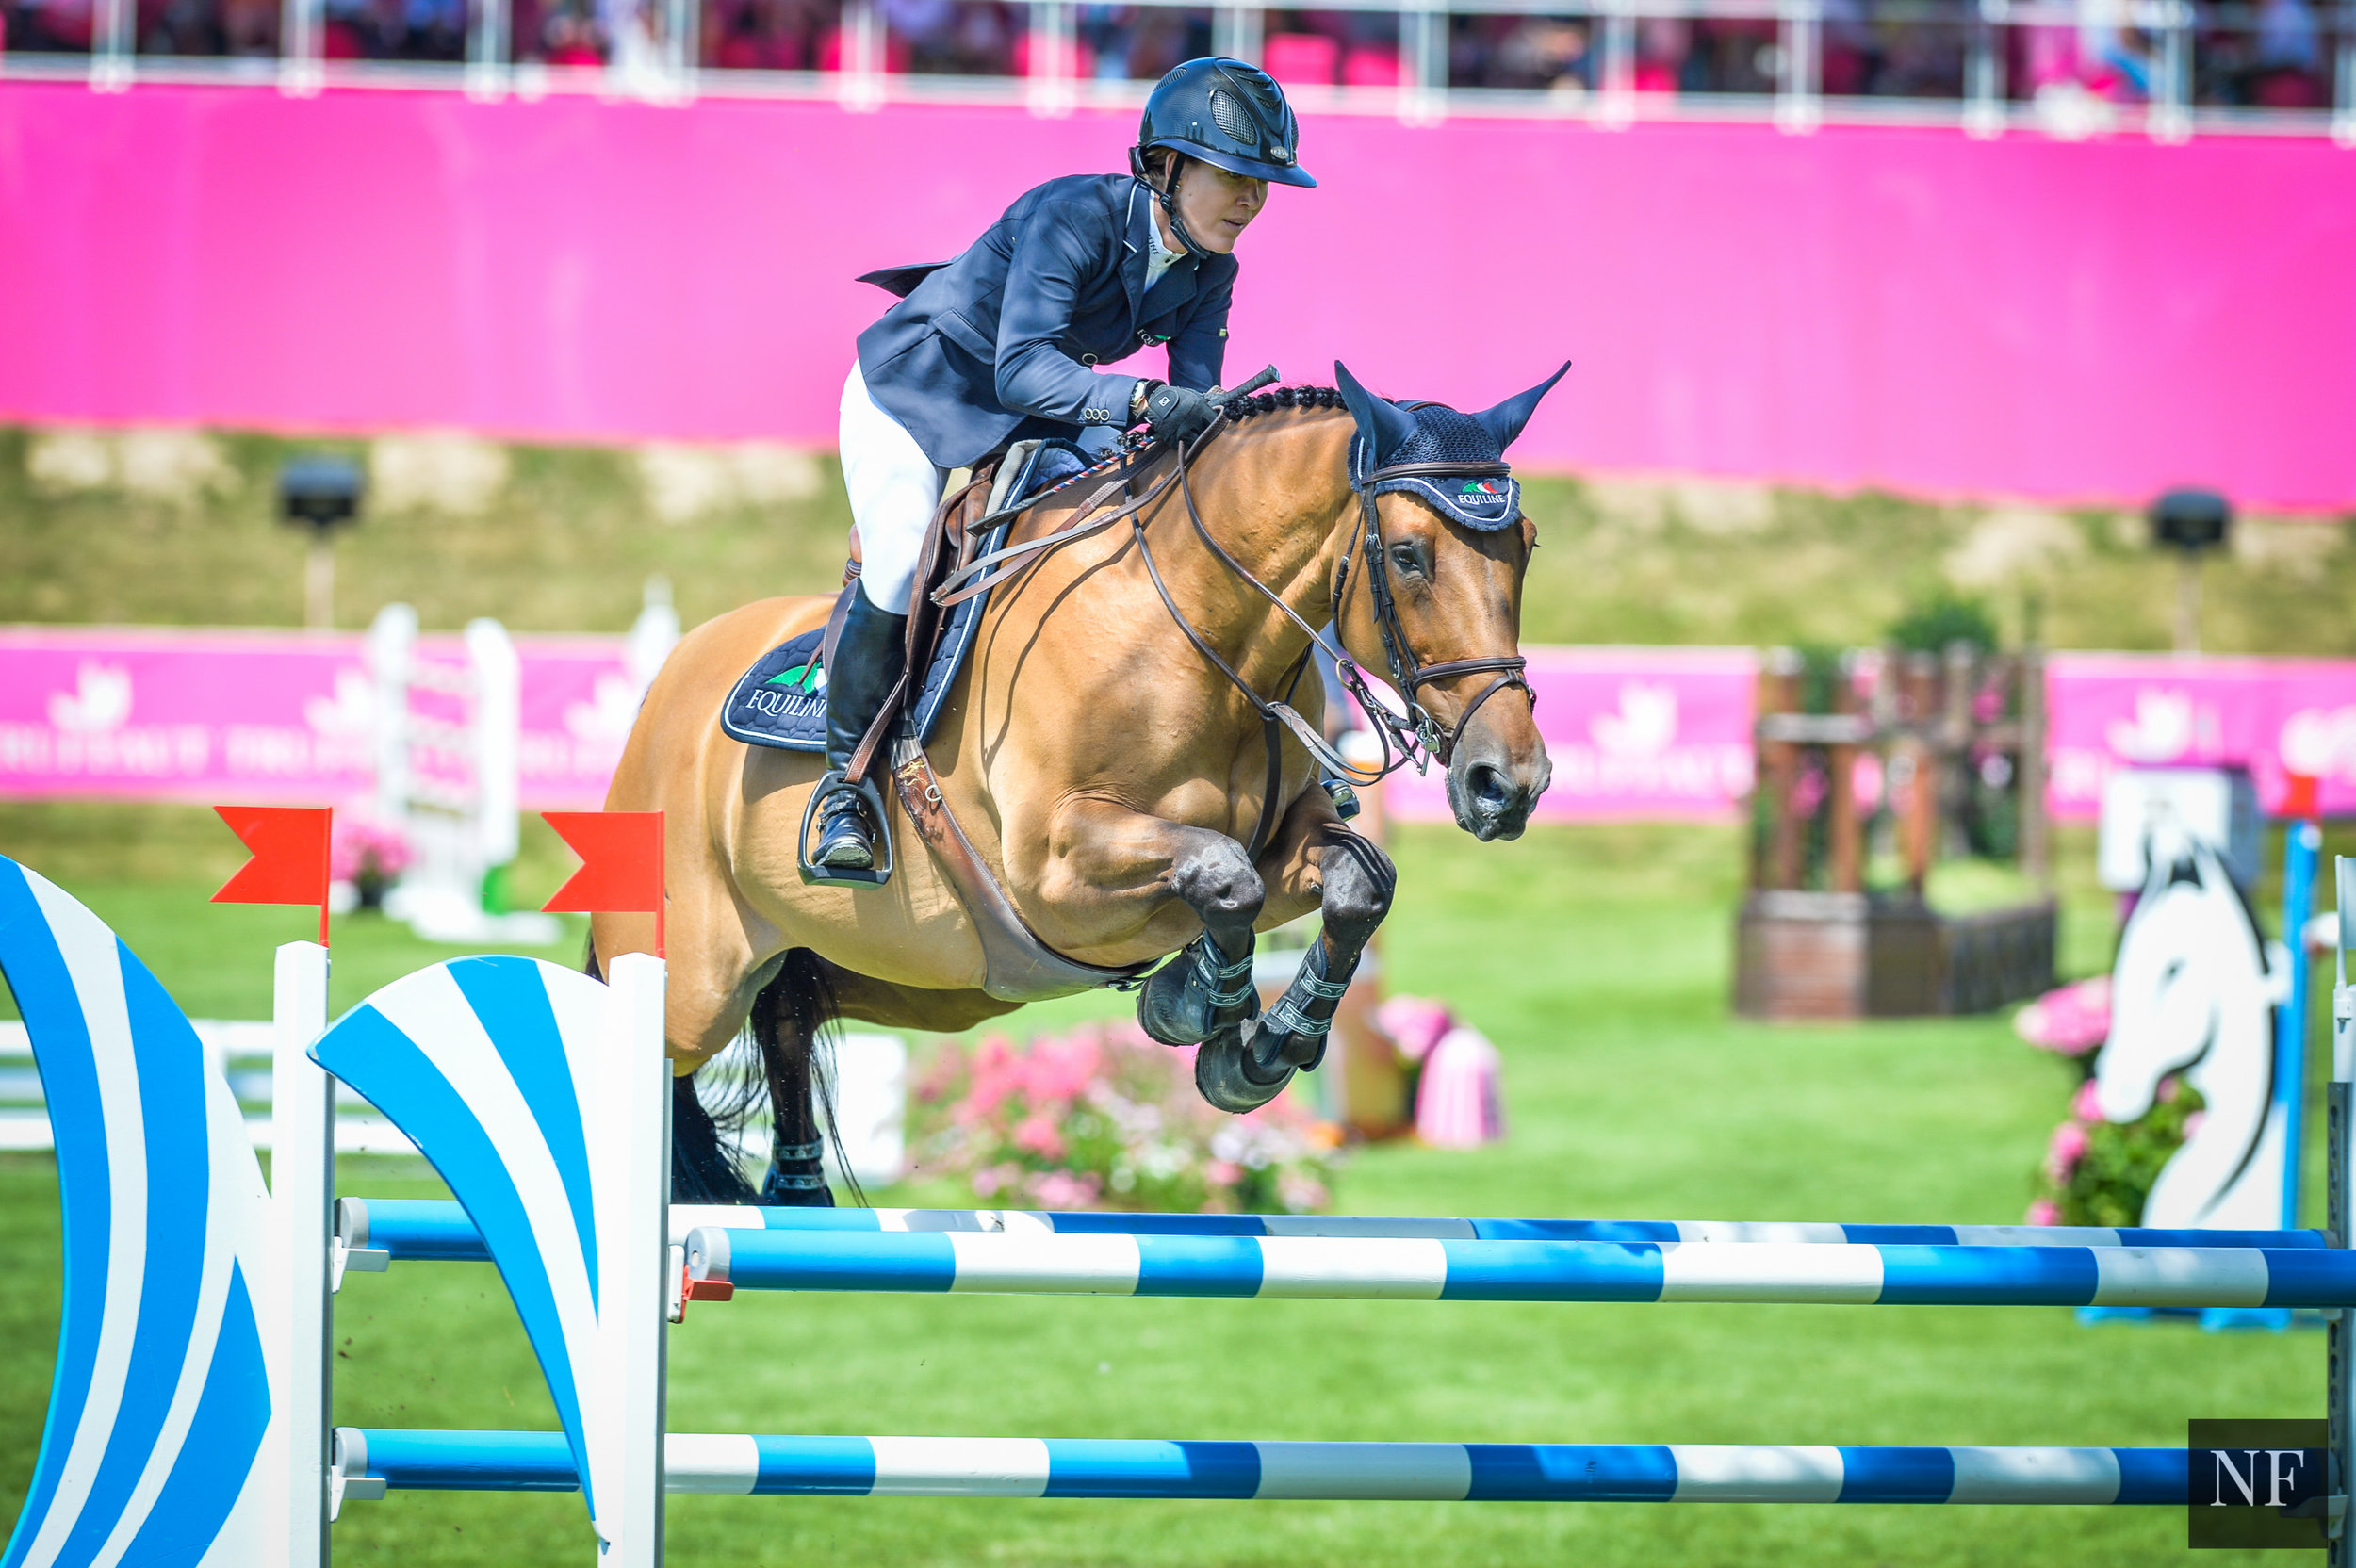 Lauren and Waterford compete at The Winter Equestrian Festival, Wellington, Florida, April 2017